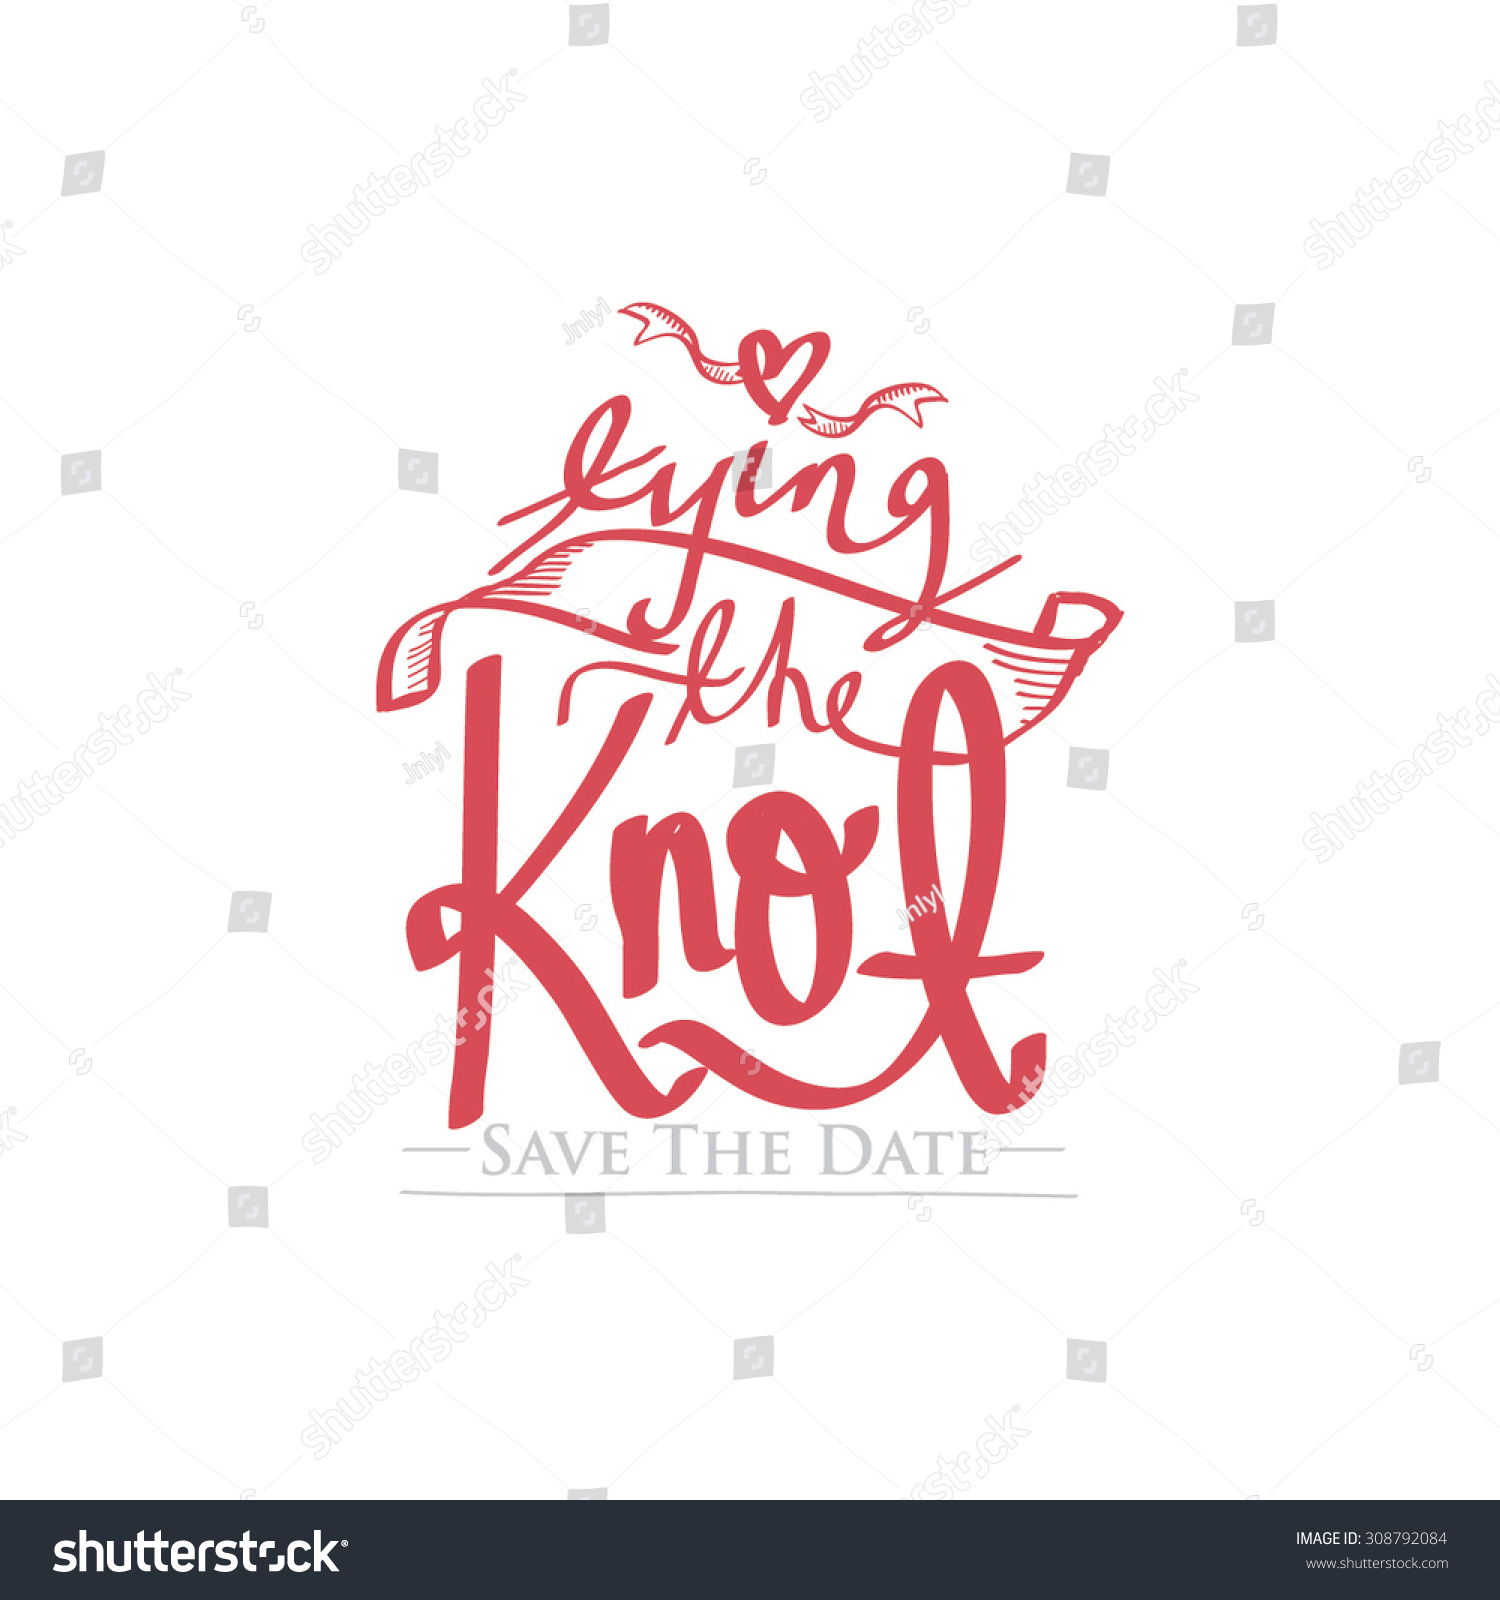 Wedding Invitation Card Designvintage Wedding Theme Stock Vector ...